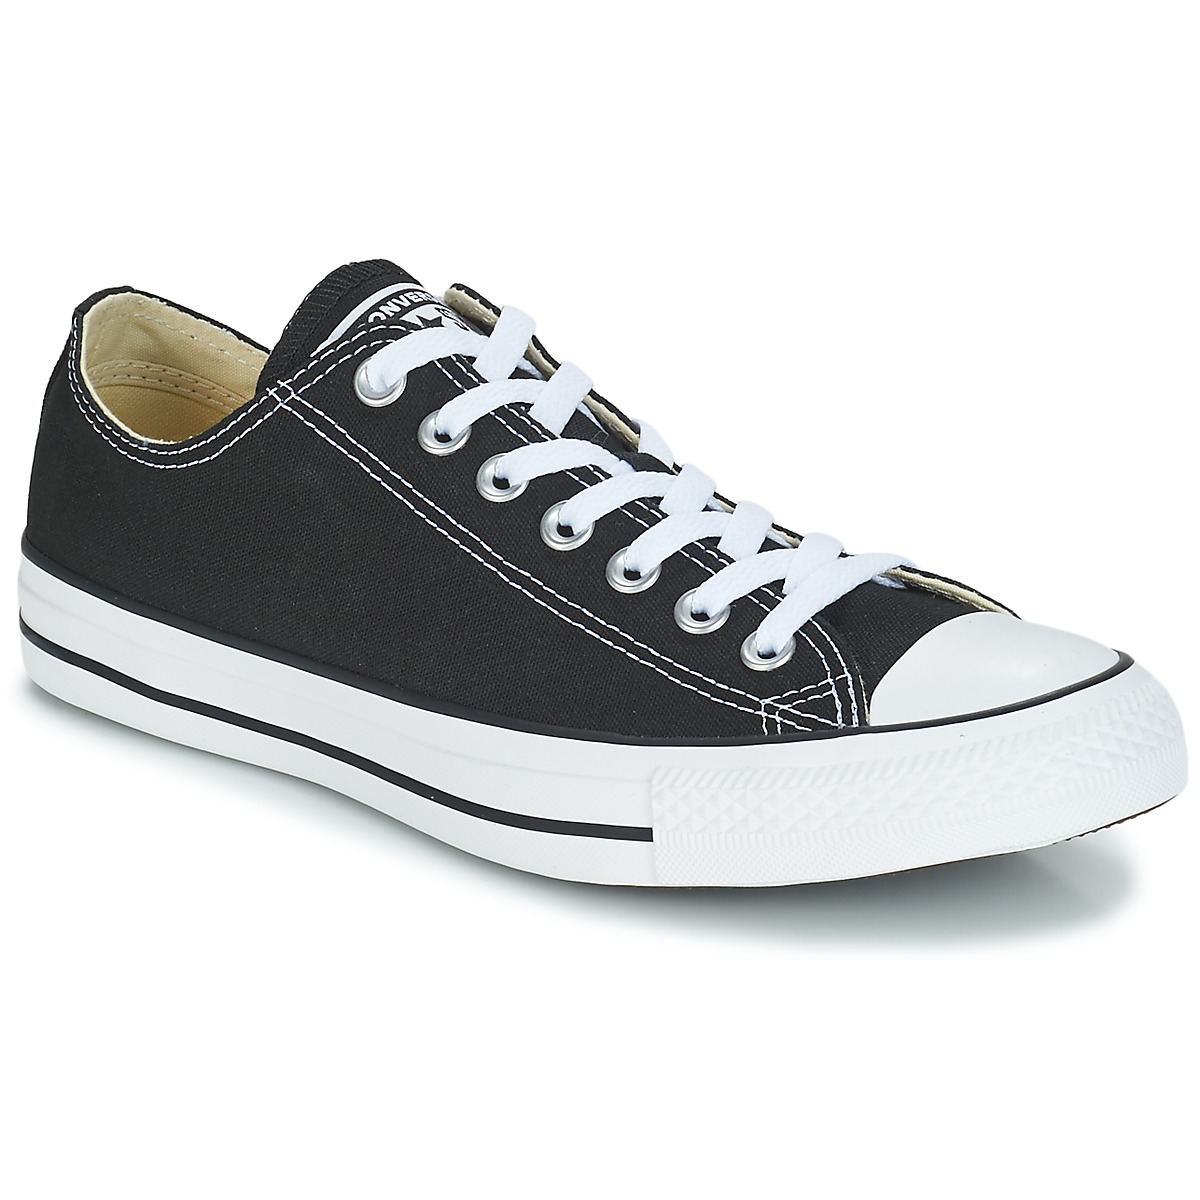 Chaussures Baskets basses Converse CHUCK TAYLOR ALL STAR CORE OX Noir 157cdd81f8d